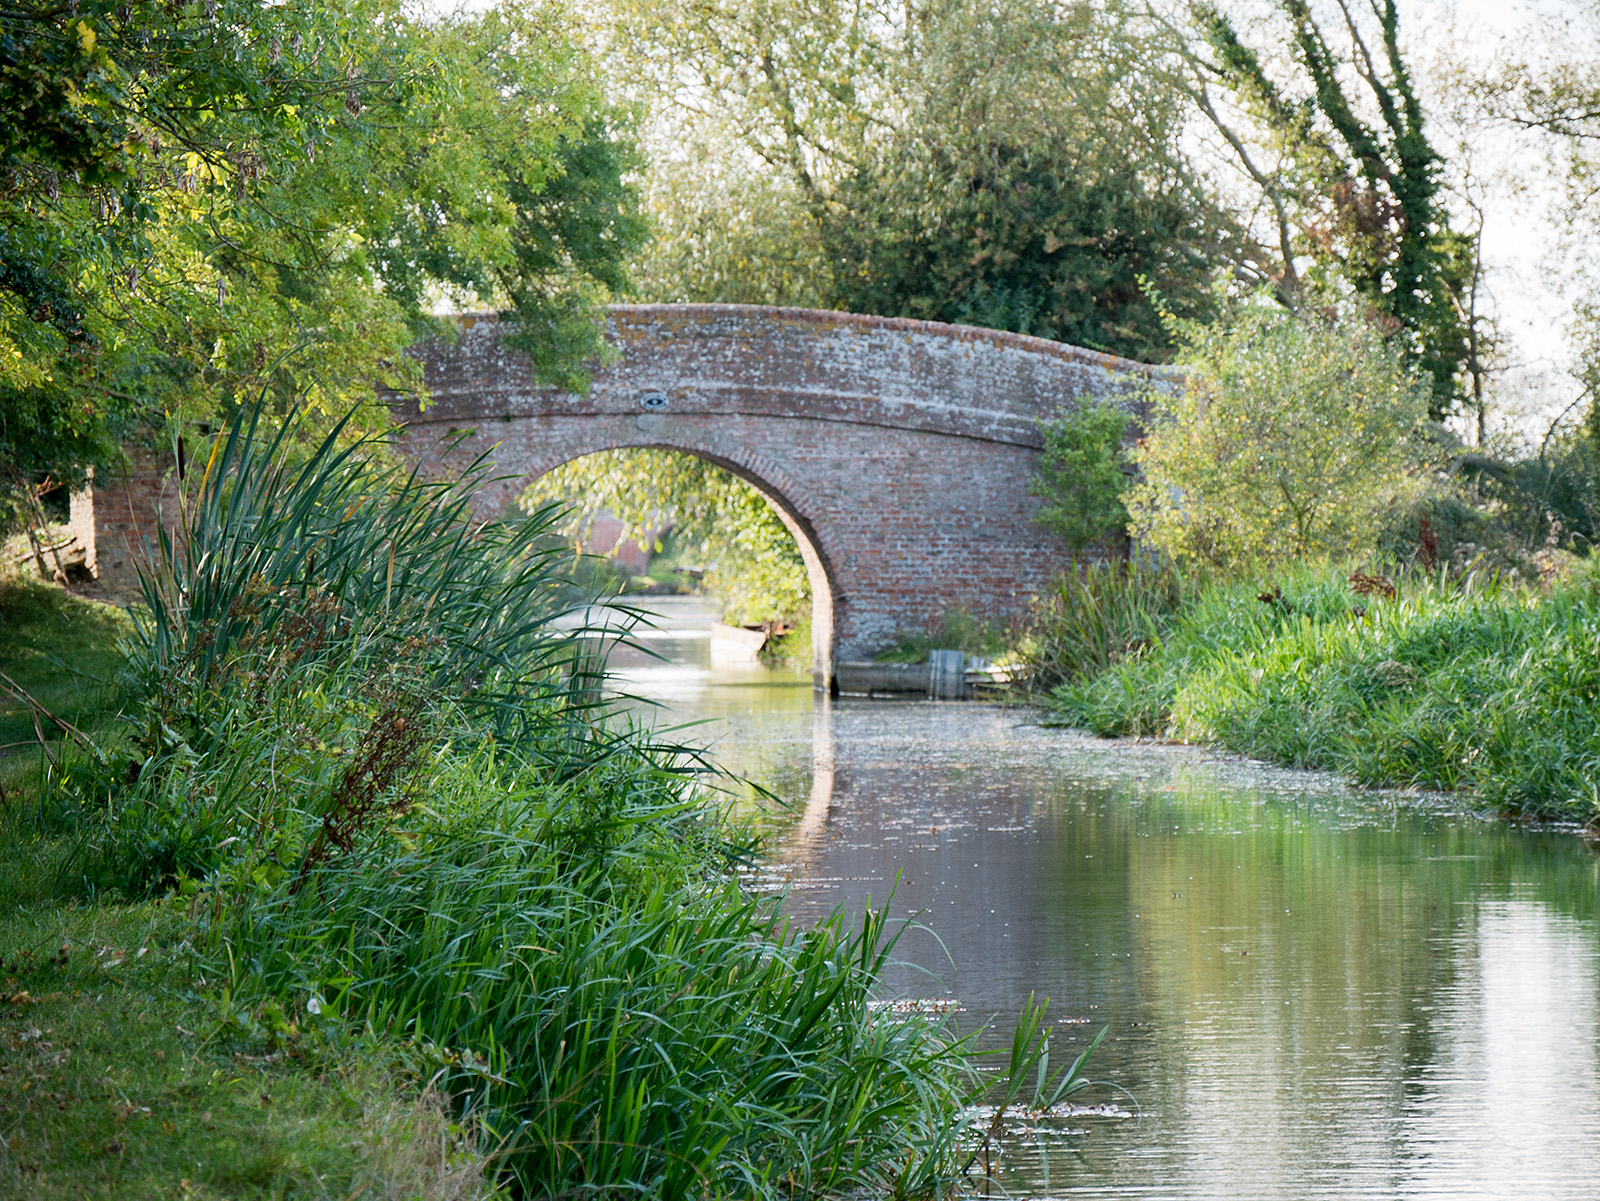 The breeze trickles the surface of the water as an old brick bridge comes into view.